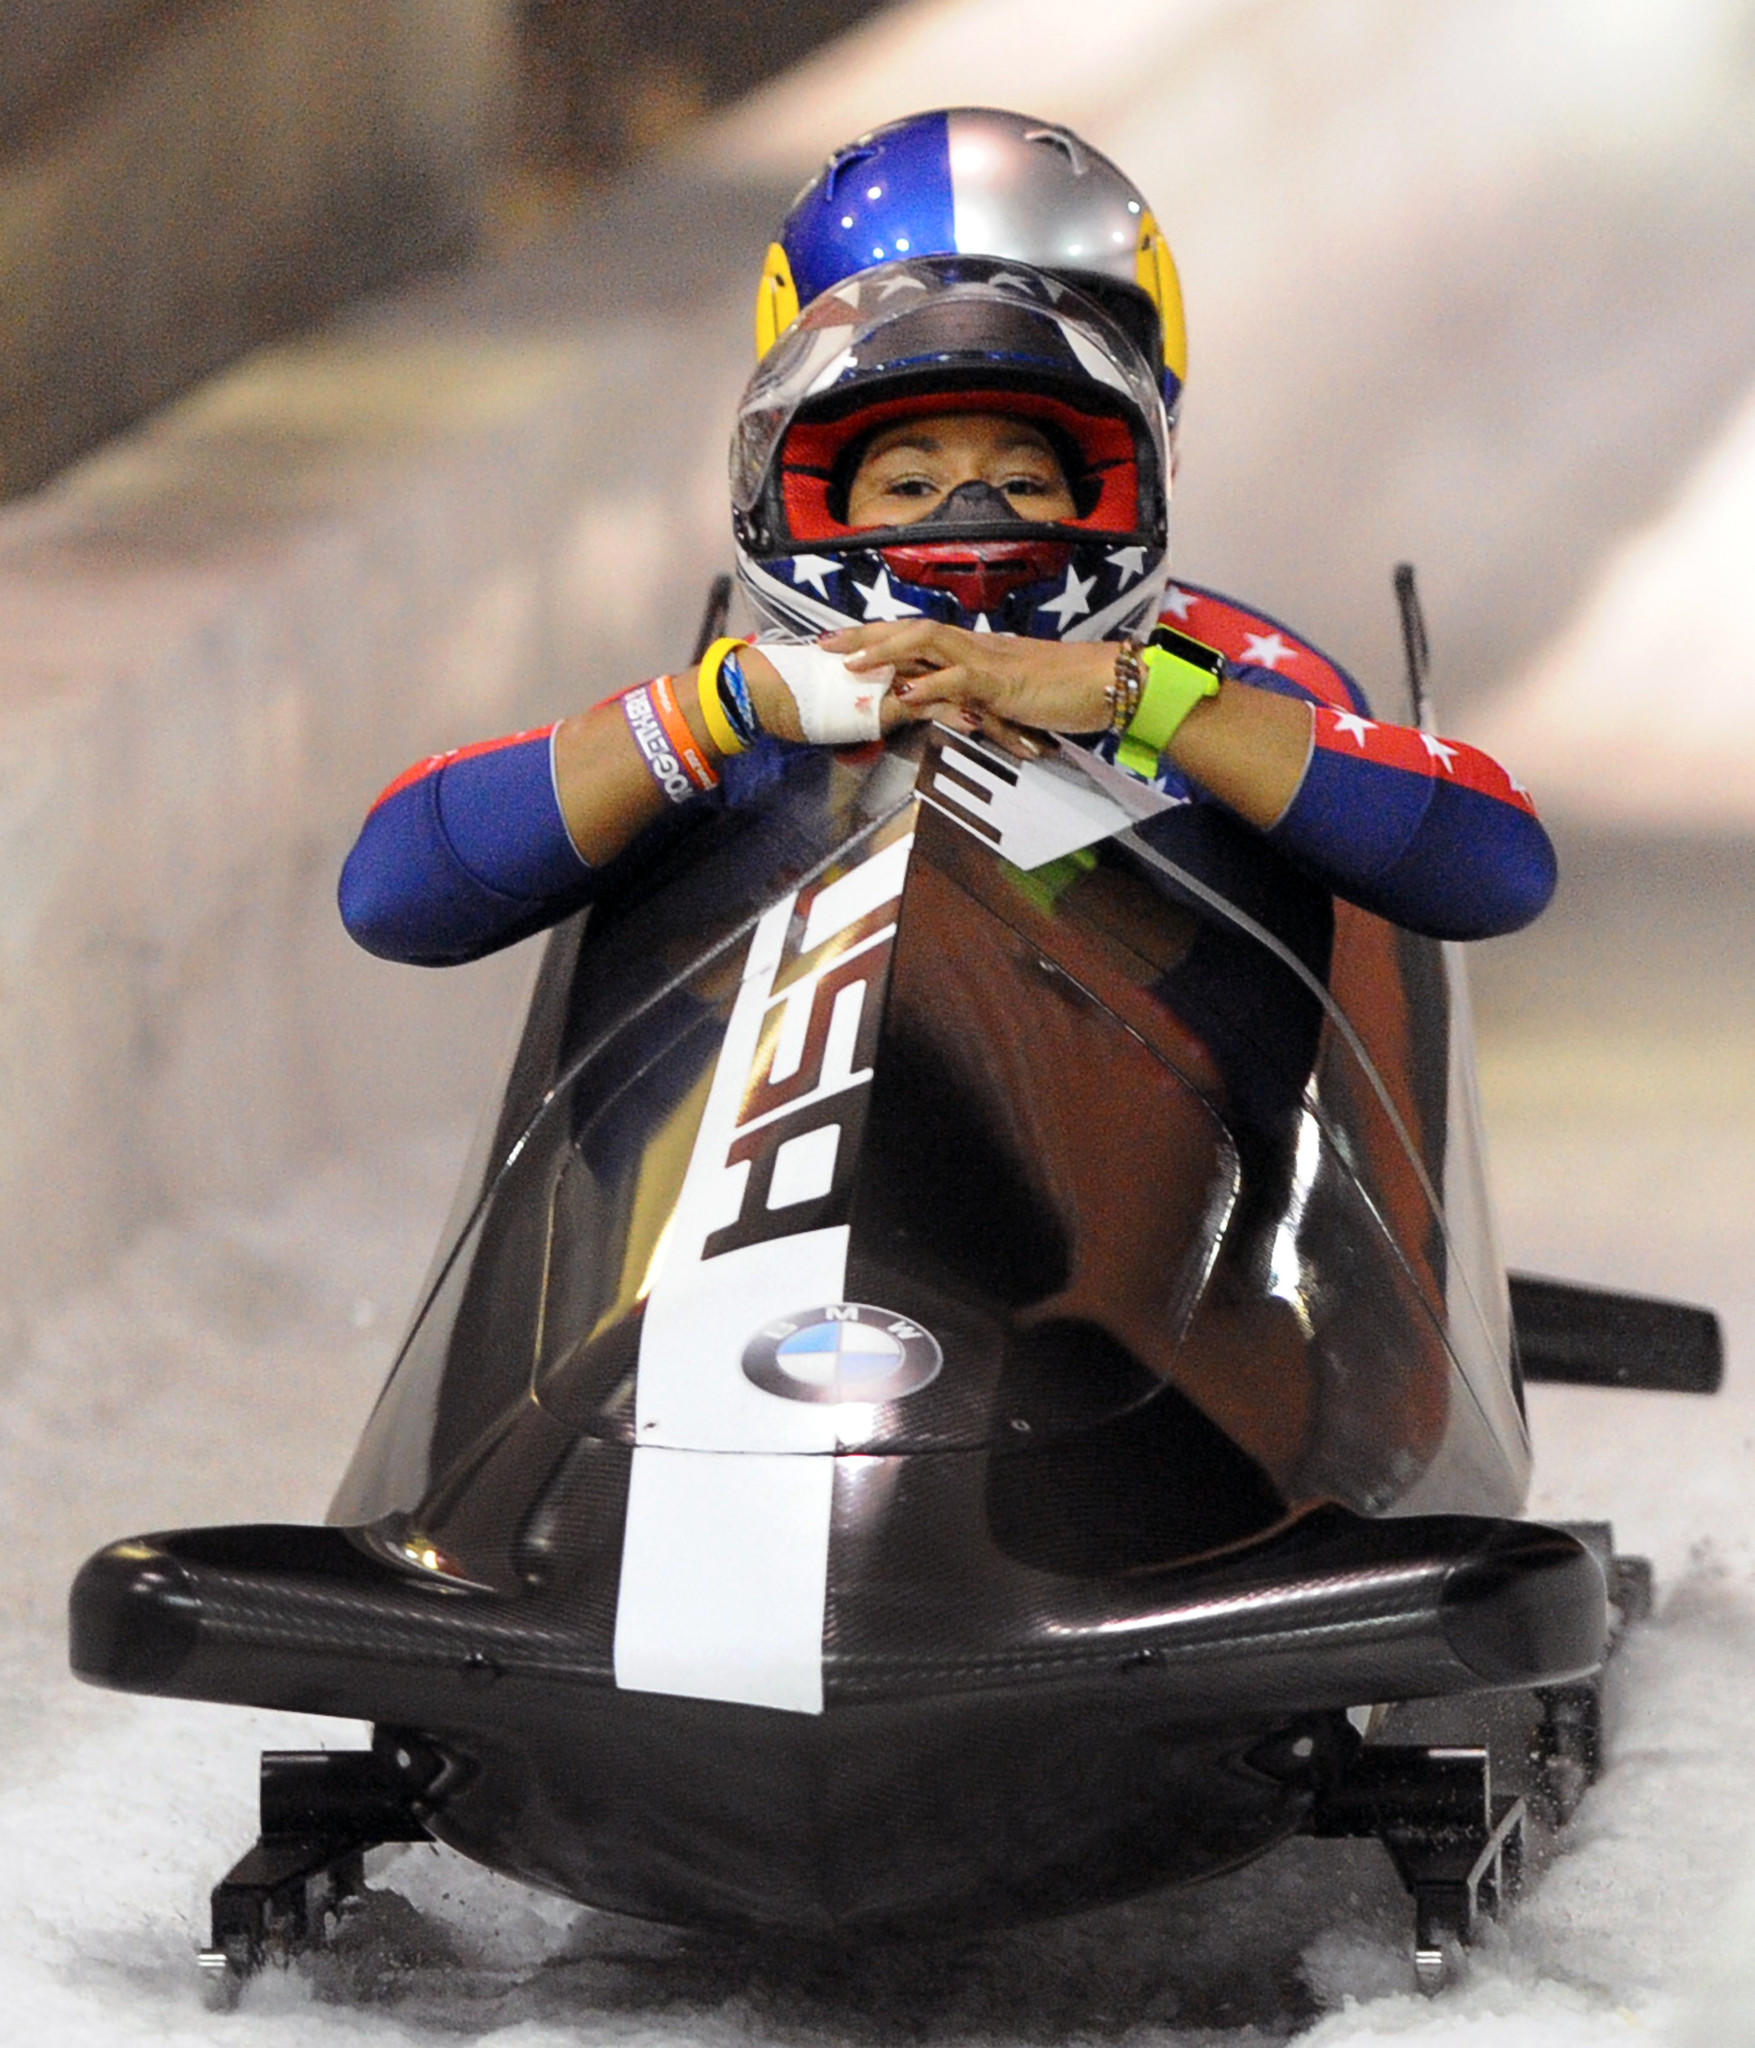 USA bobsled team of pilot Jazmine Fenlator and brakewoman Lolo Jones cross the finish line after the second of two selection runs at the Utah Olympic Park in Park City, Utah.